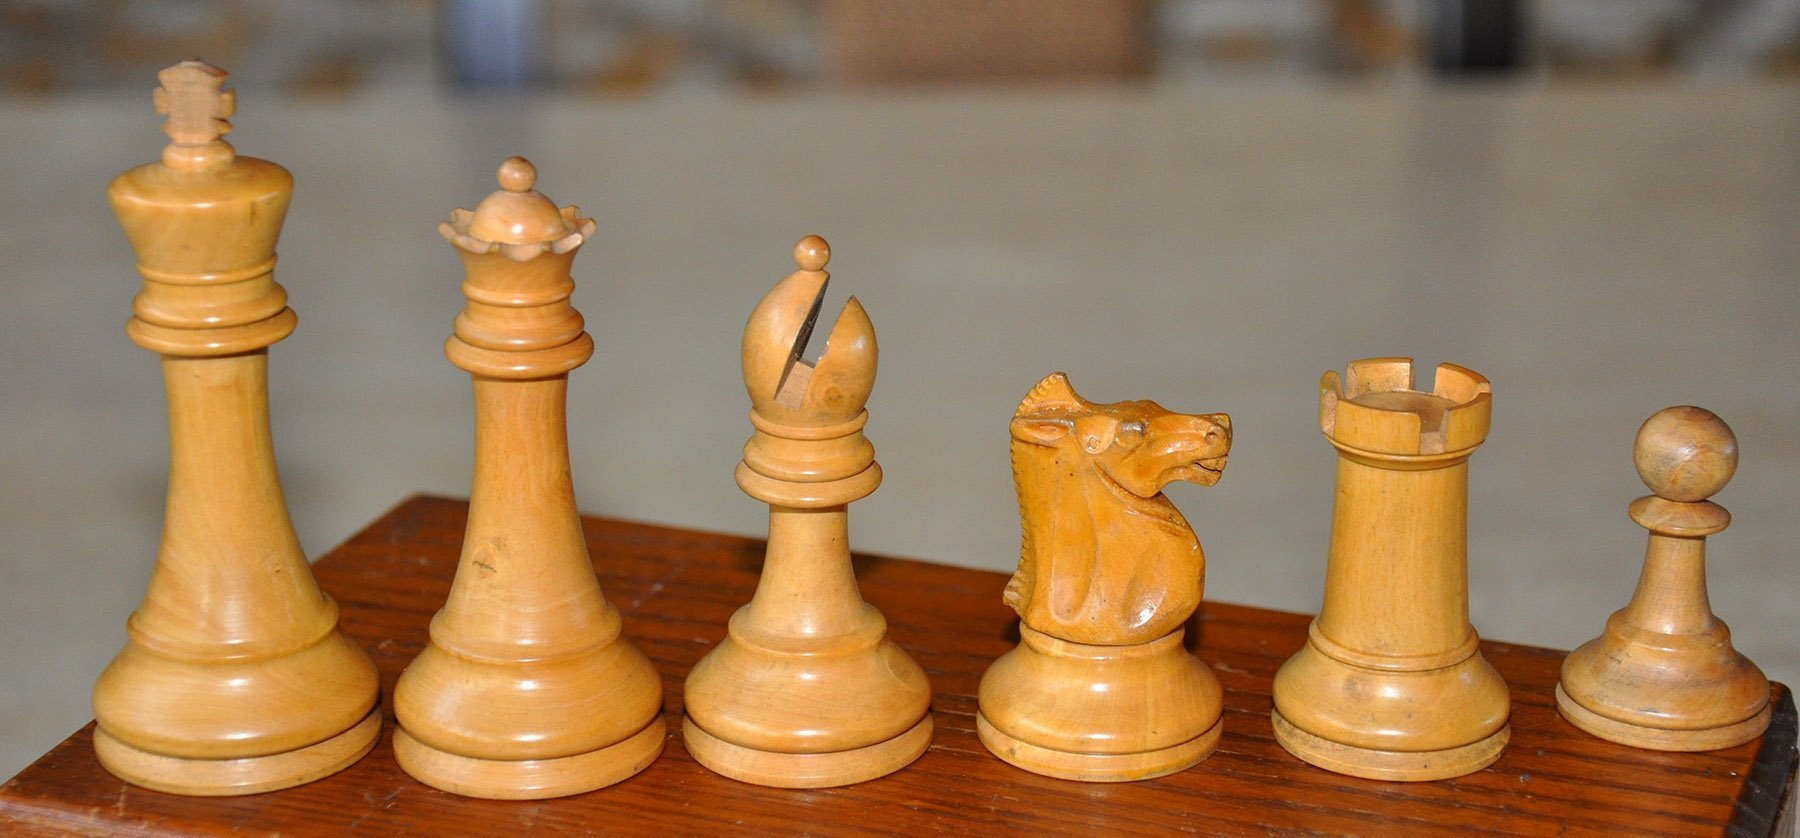 Popular Staunton Antique Chess